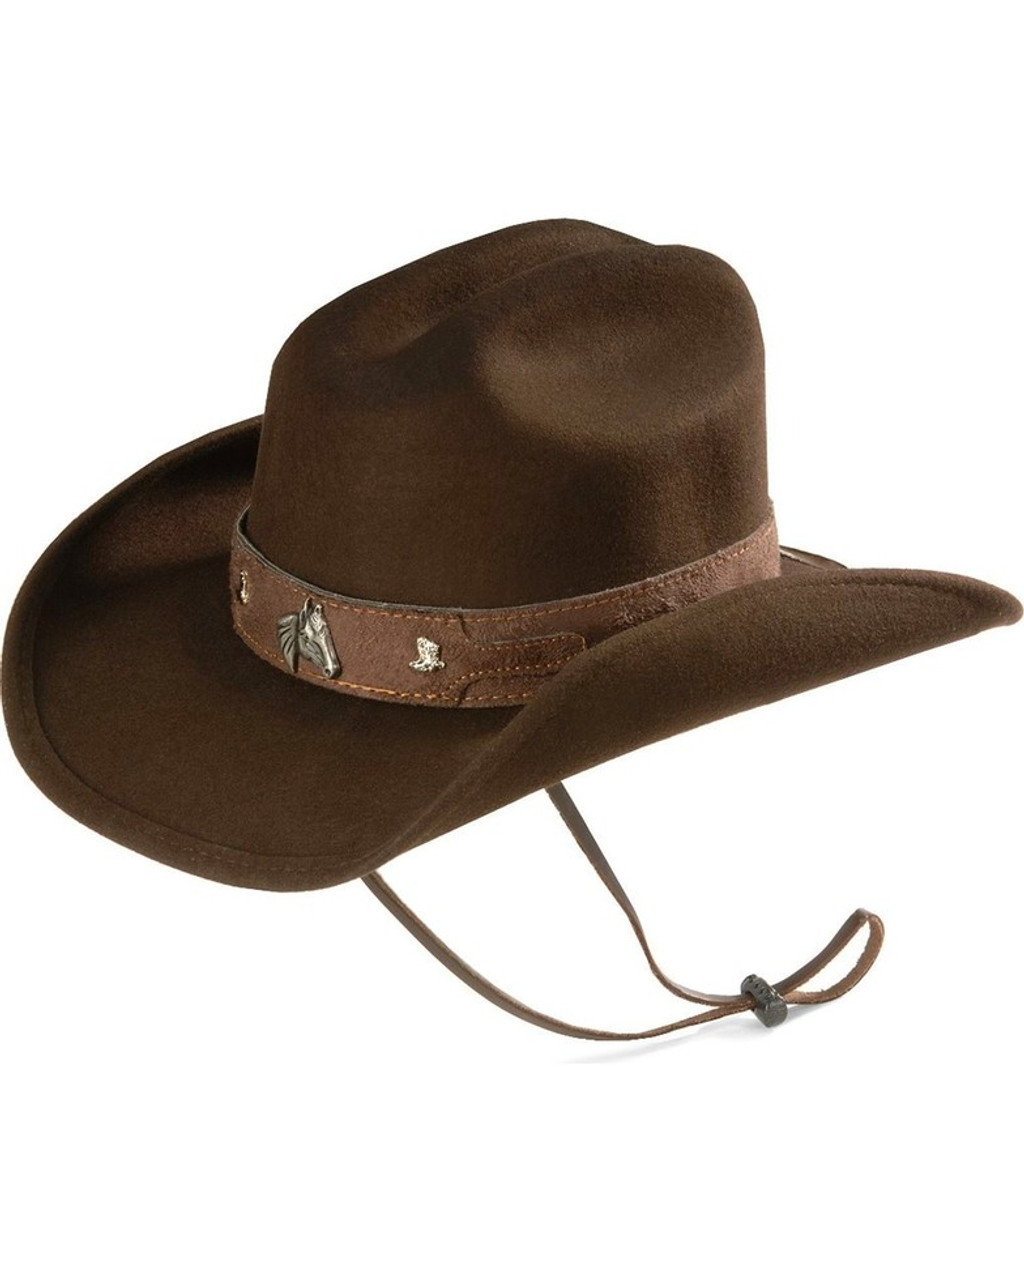 Bullhide Horsing Around Child s Brown Felt Cowboy Hat w Horse Concho 0483CH 5e522da6ce75